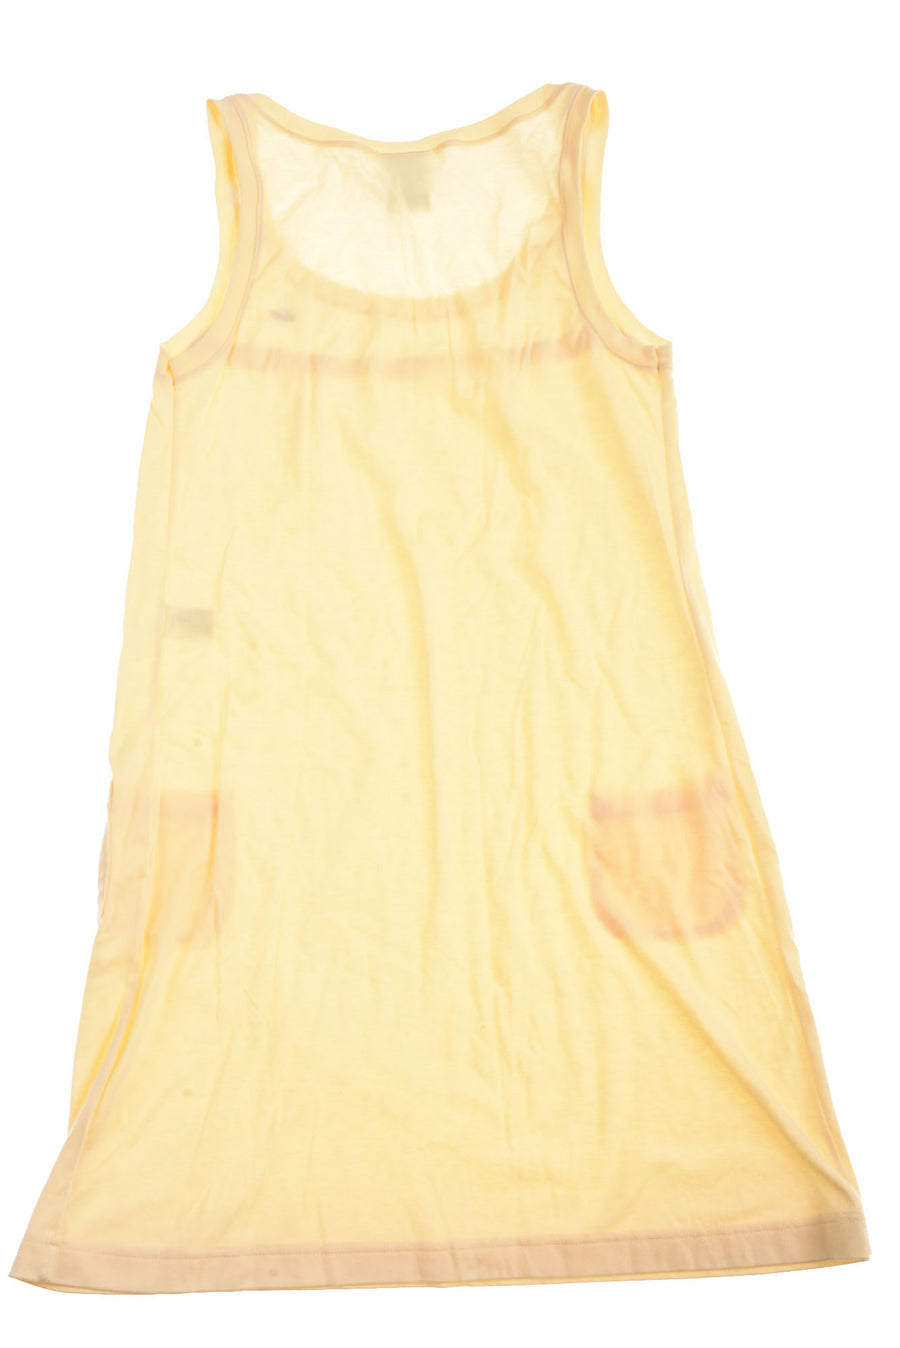 USED Lacoste Women's Dress 36 Yellow